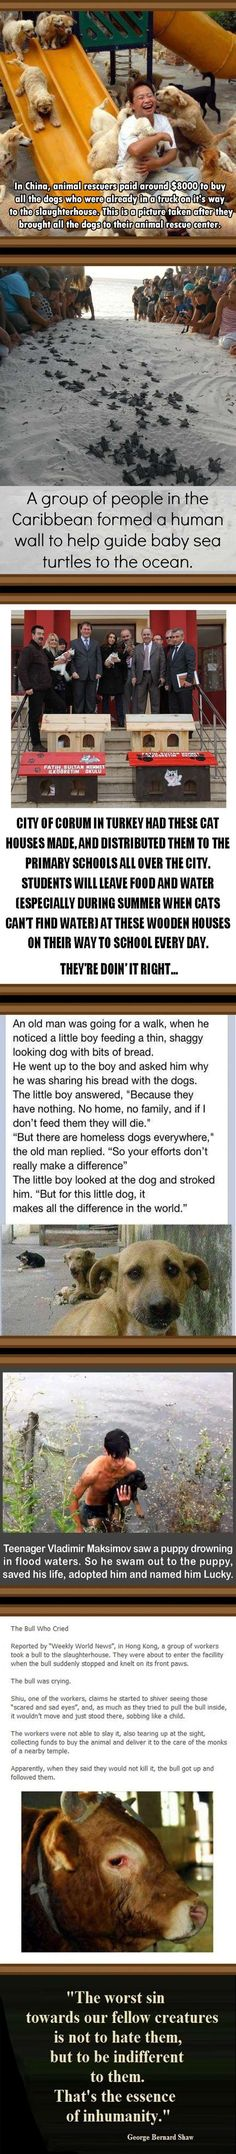 Animal Rescue : Faith in humanity Restored